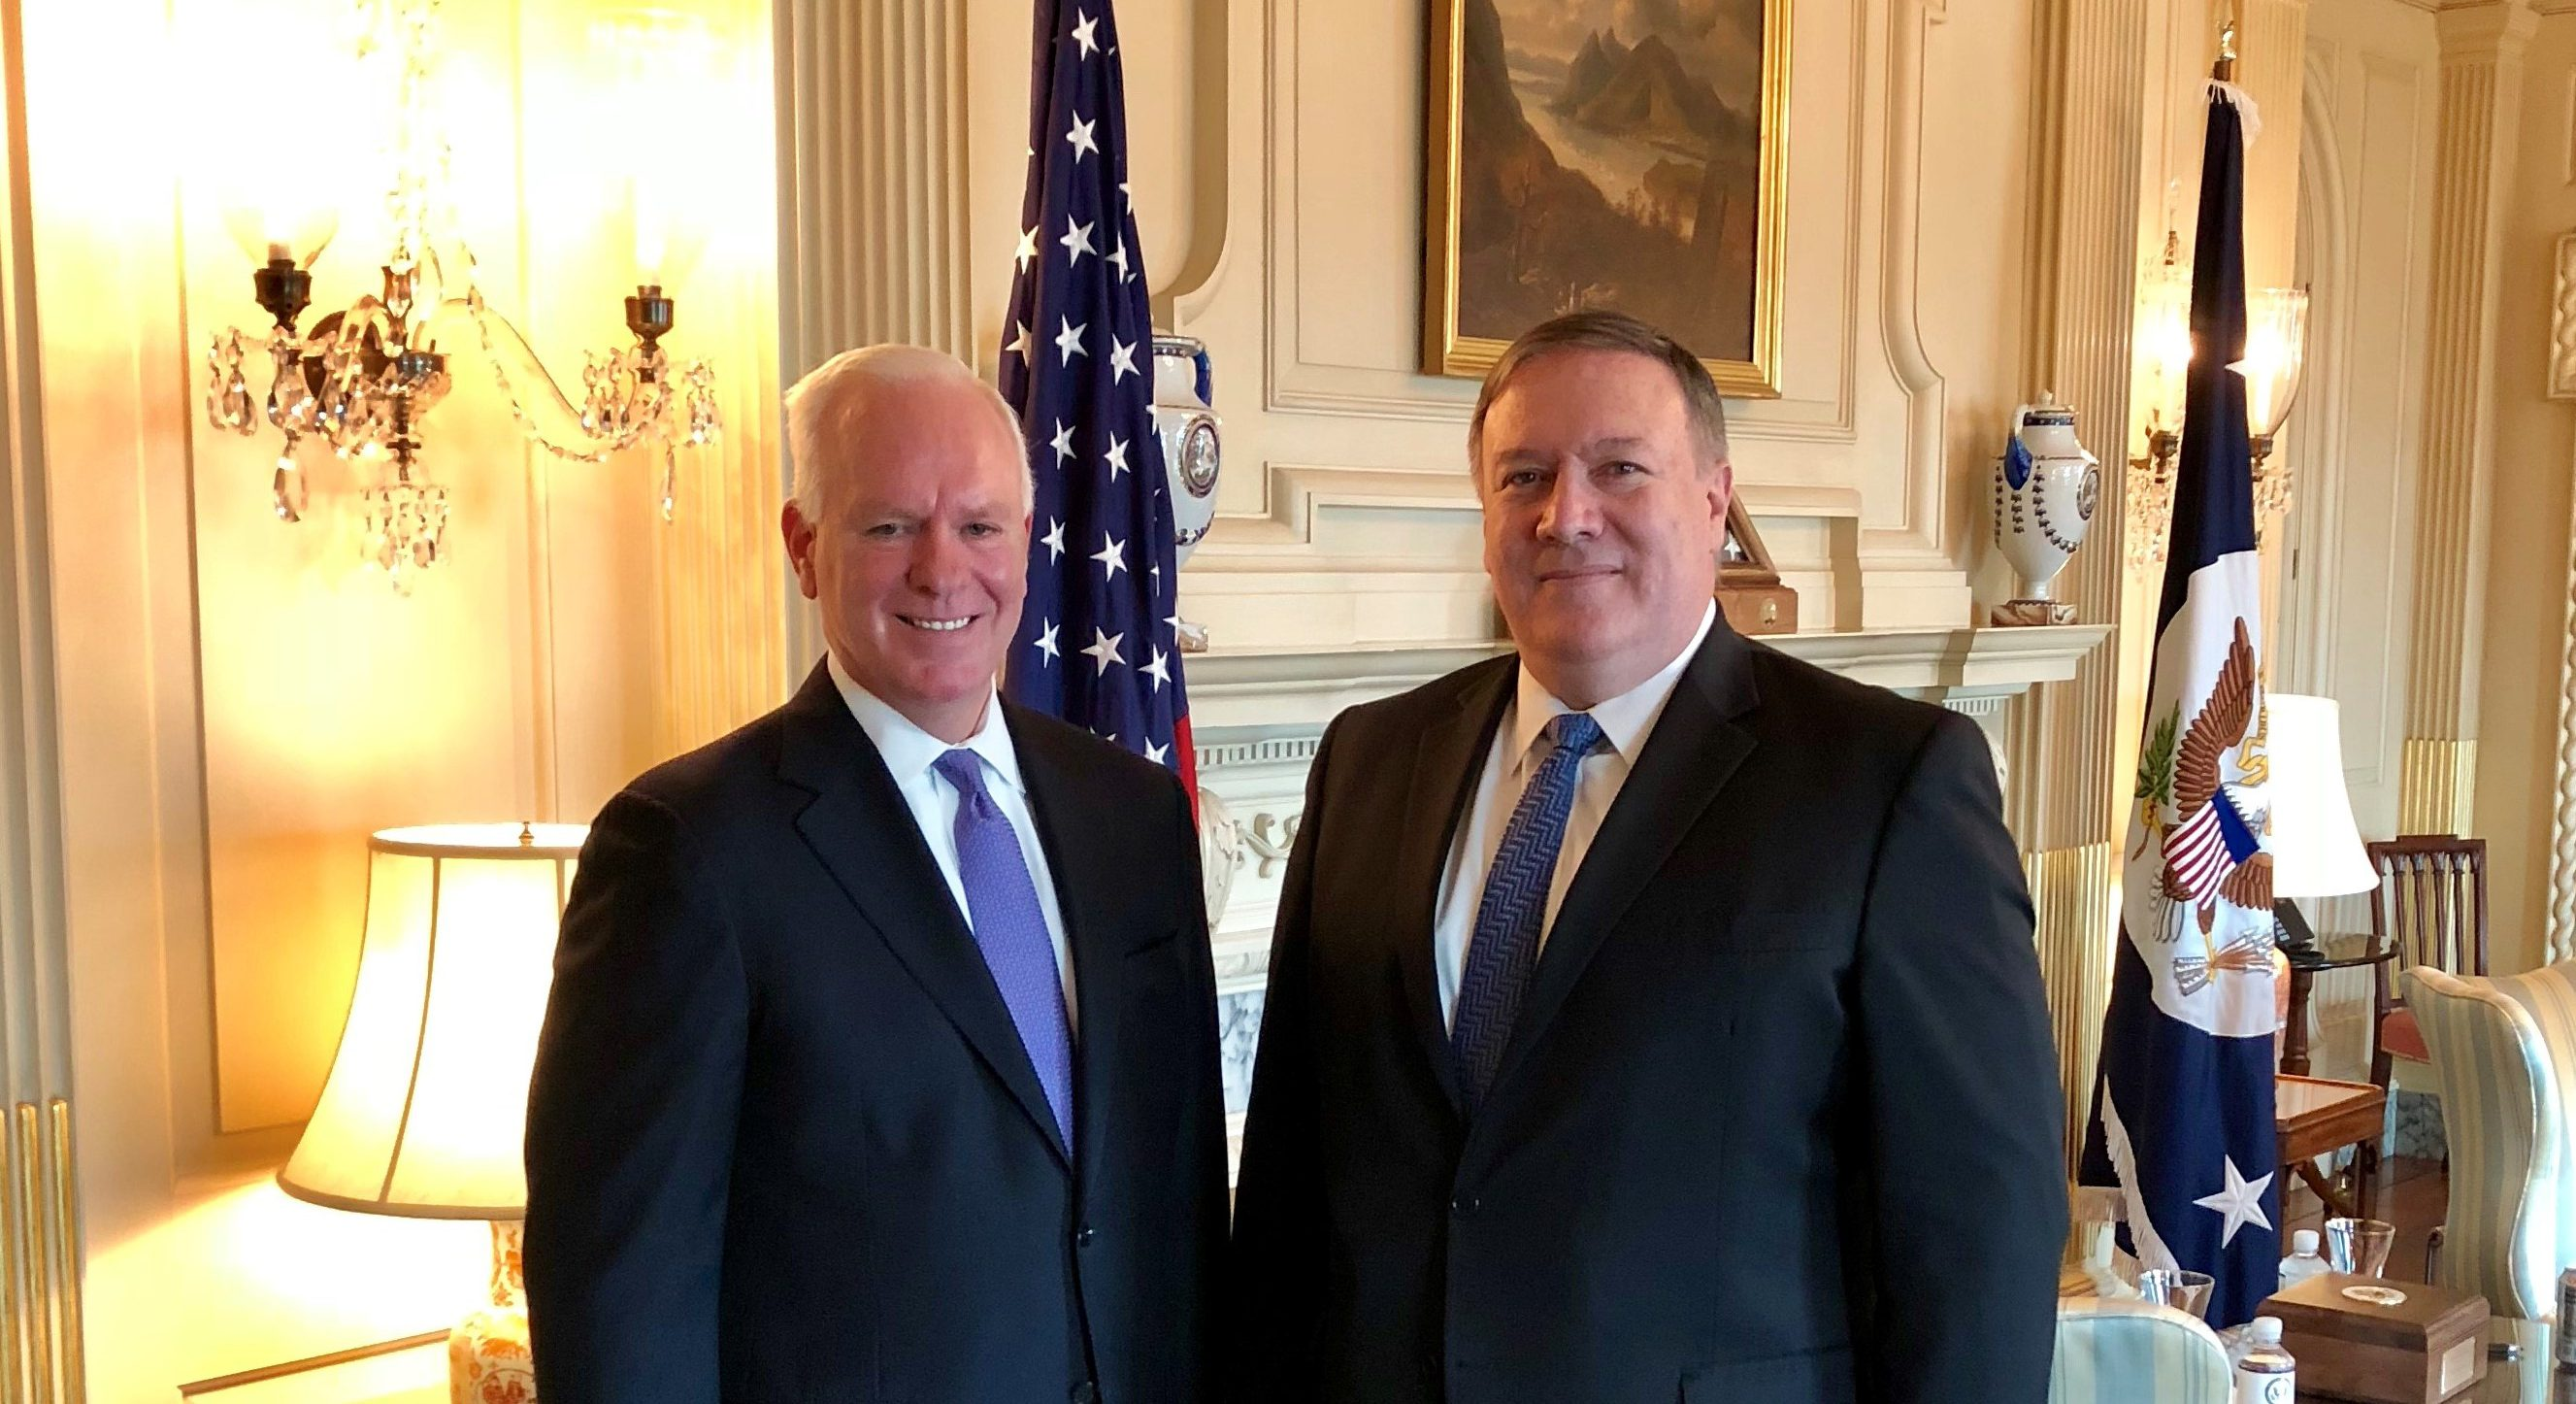 U.S. Secretary of State Michael Pompeo voices support for USAGM efforts